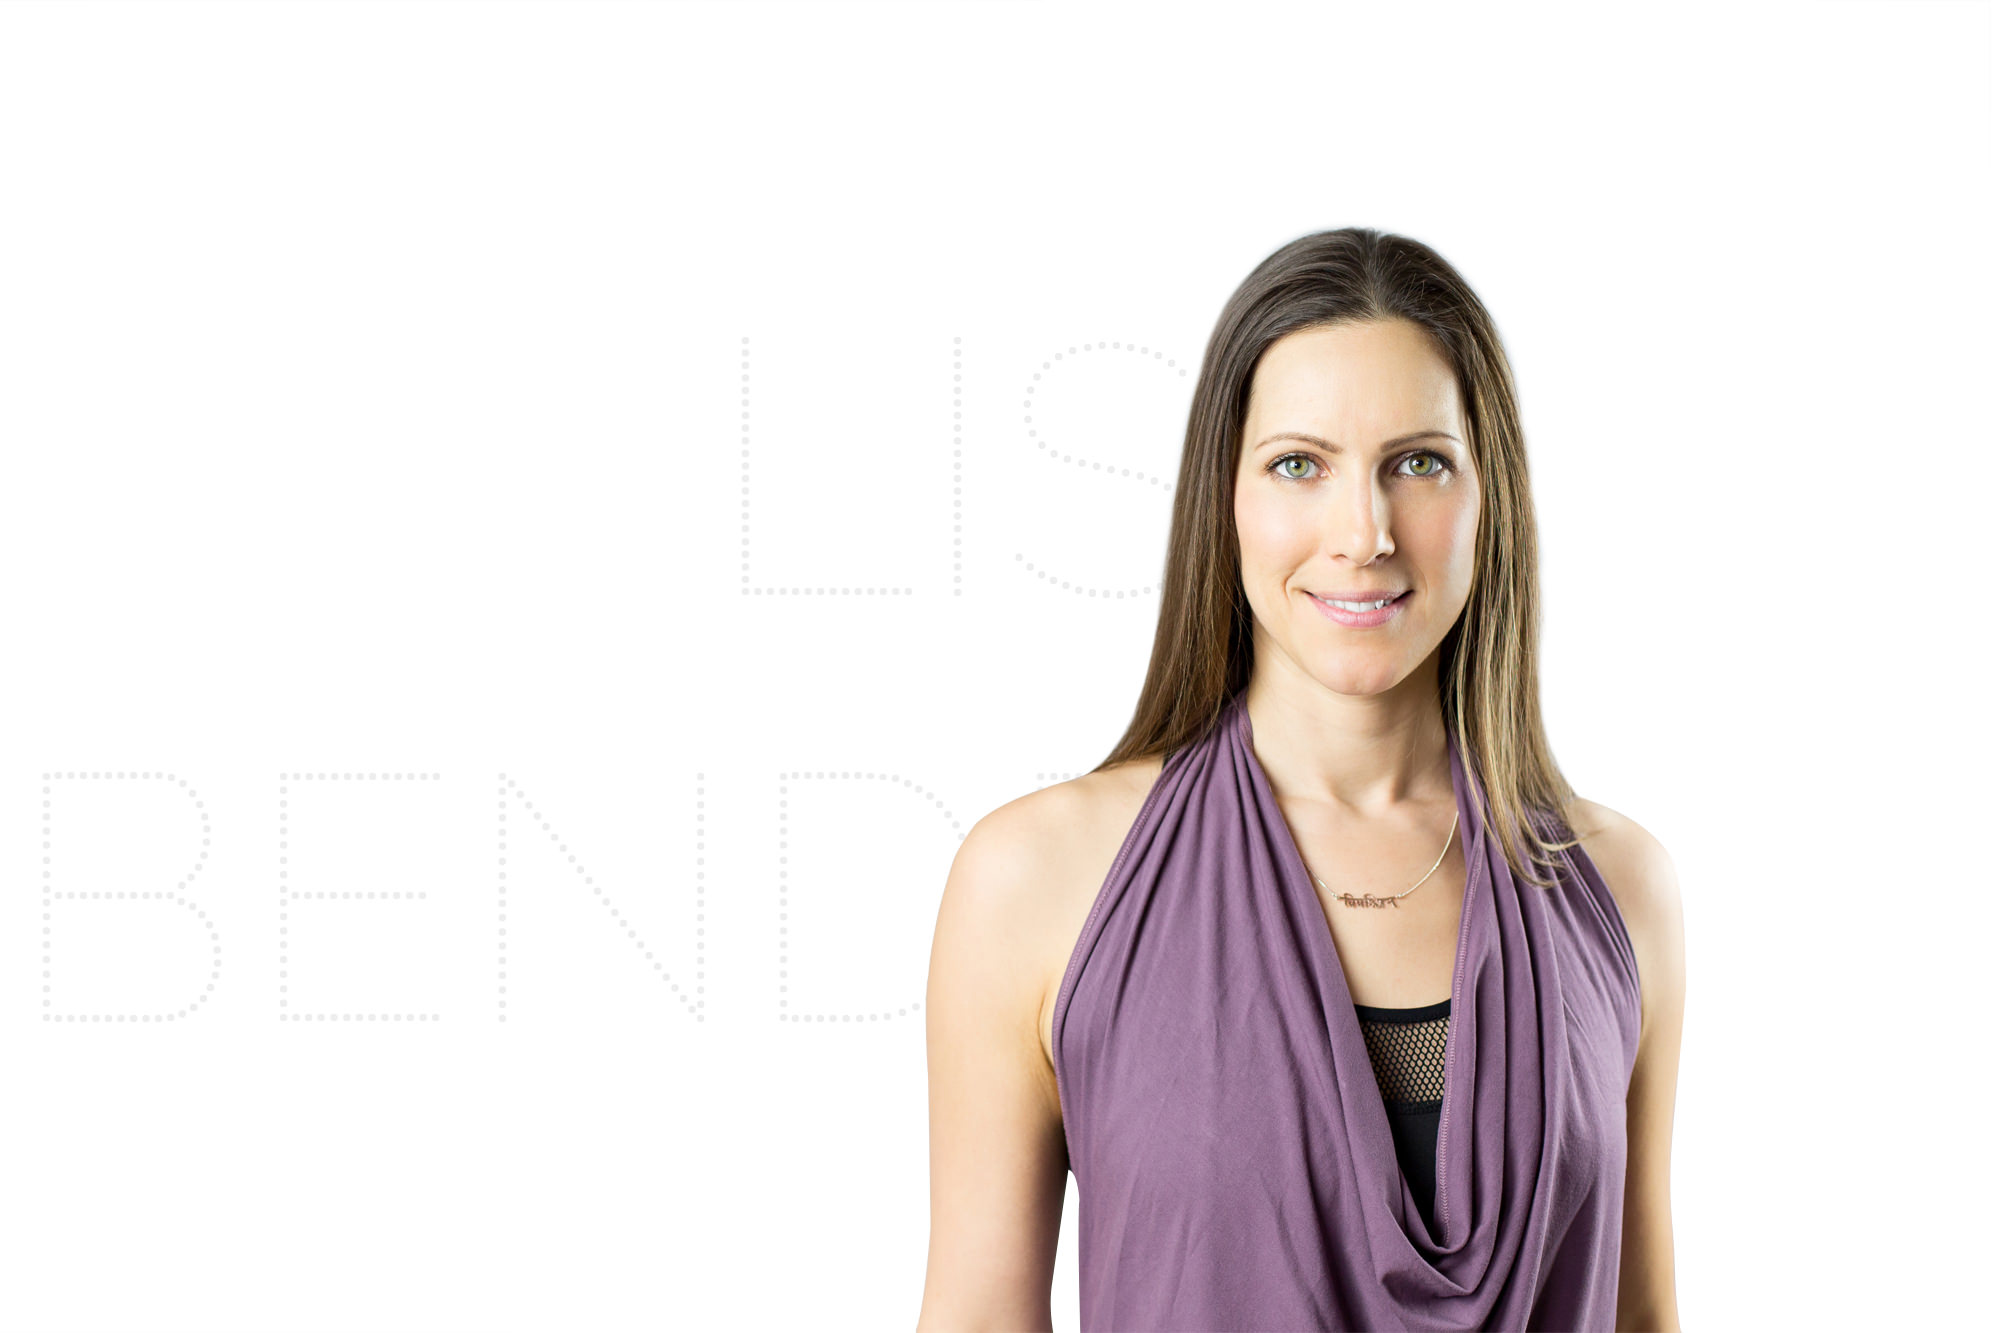 Lisa Bender is the studio director at Spine Stretch Studio